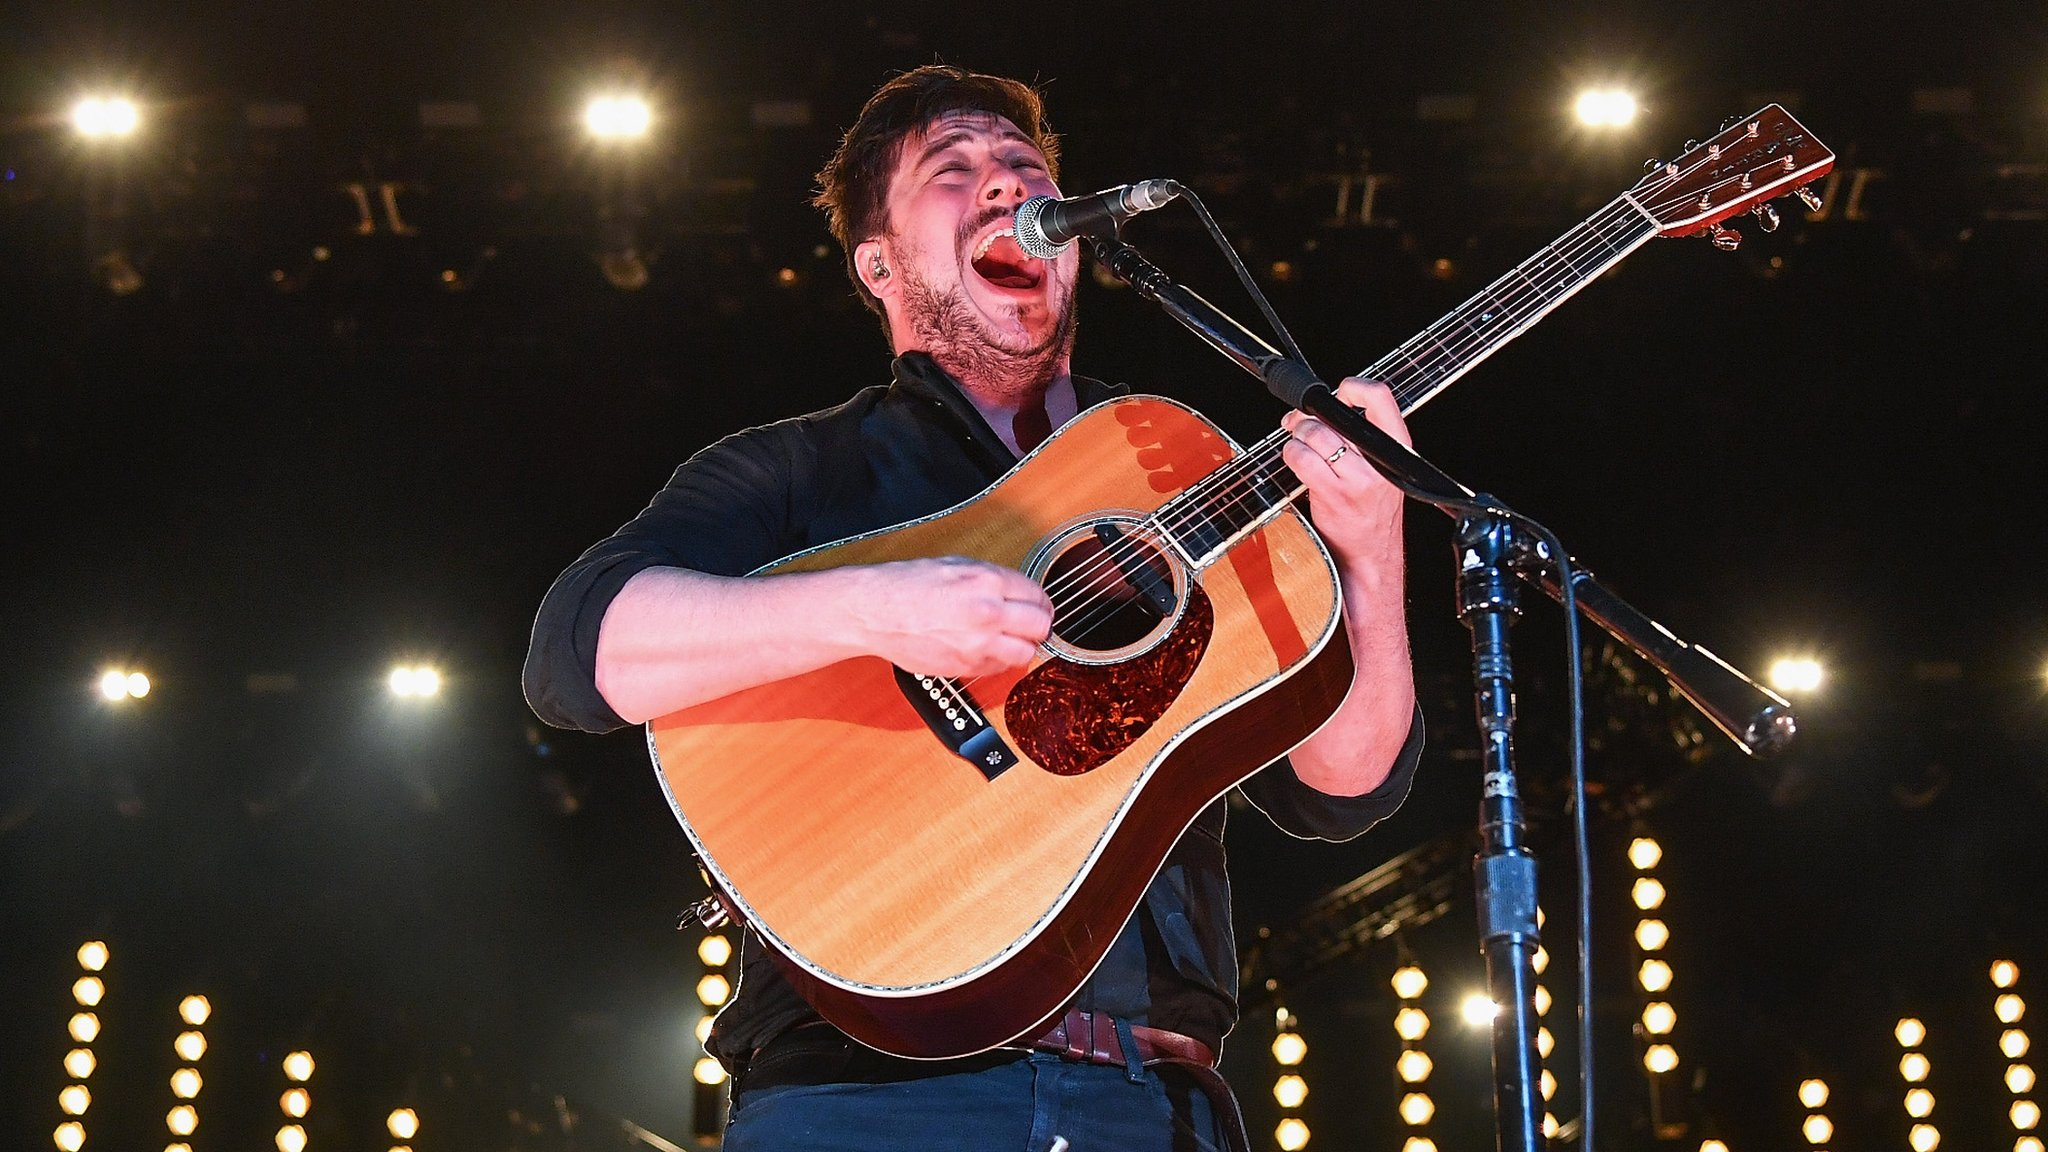 BBC News - Mumford & Sons reschedule cancelled gigs